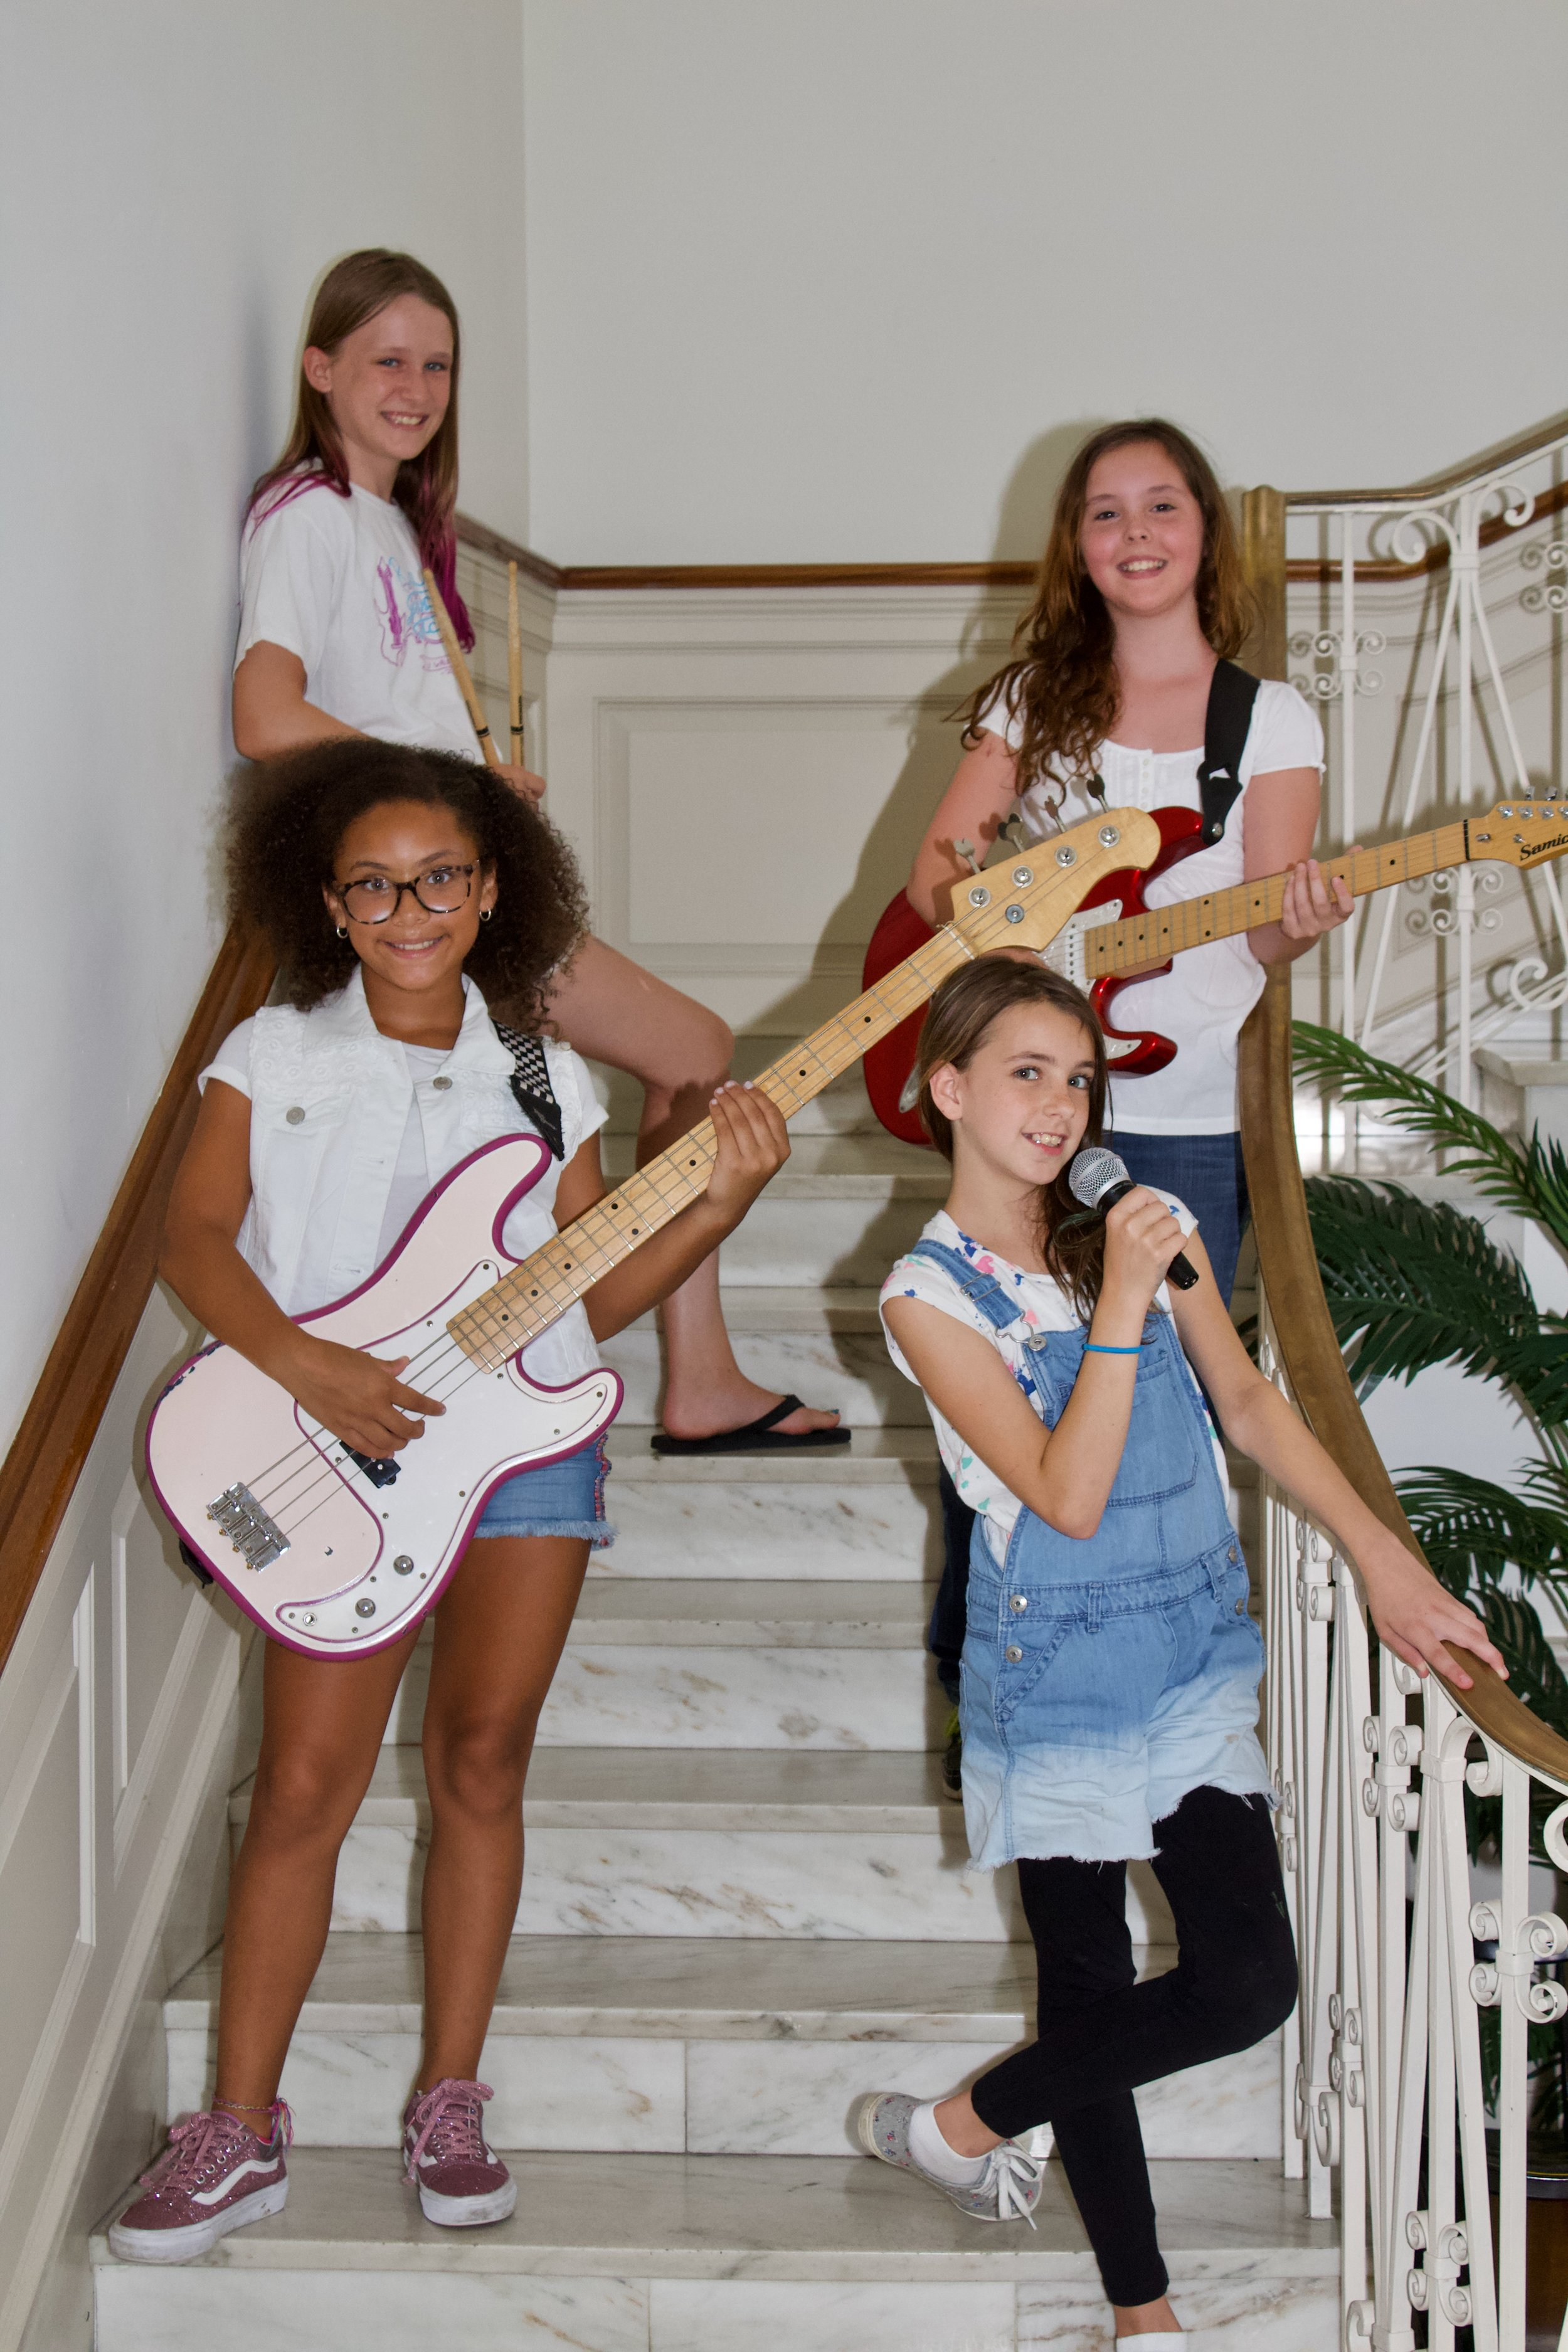 watch Rock Queens perform their song   here  !